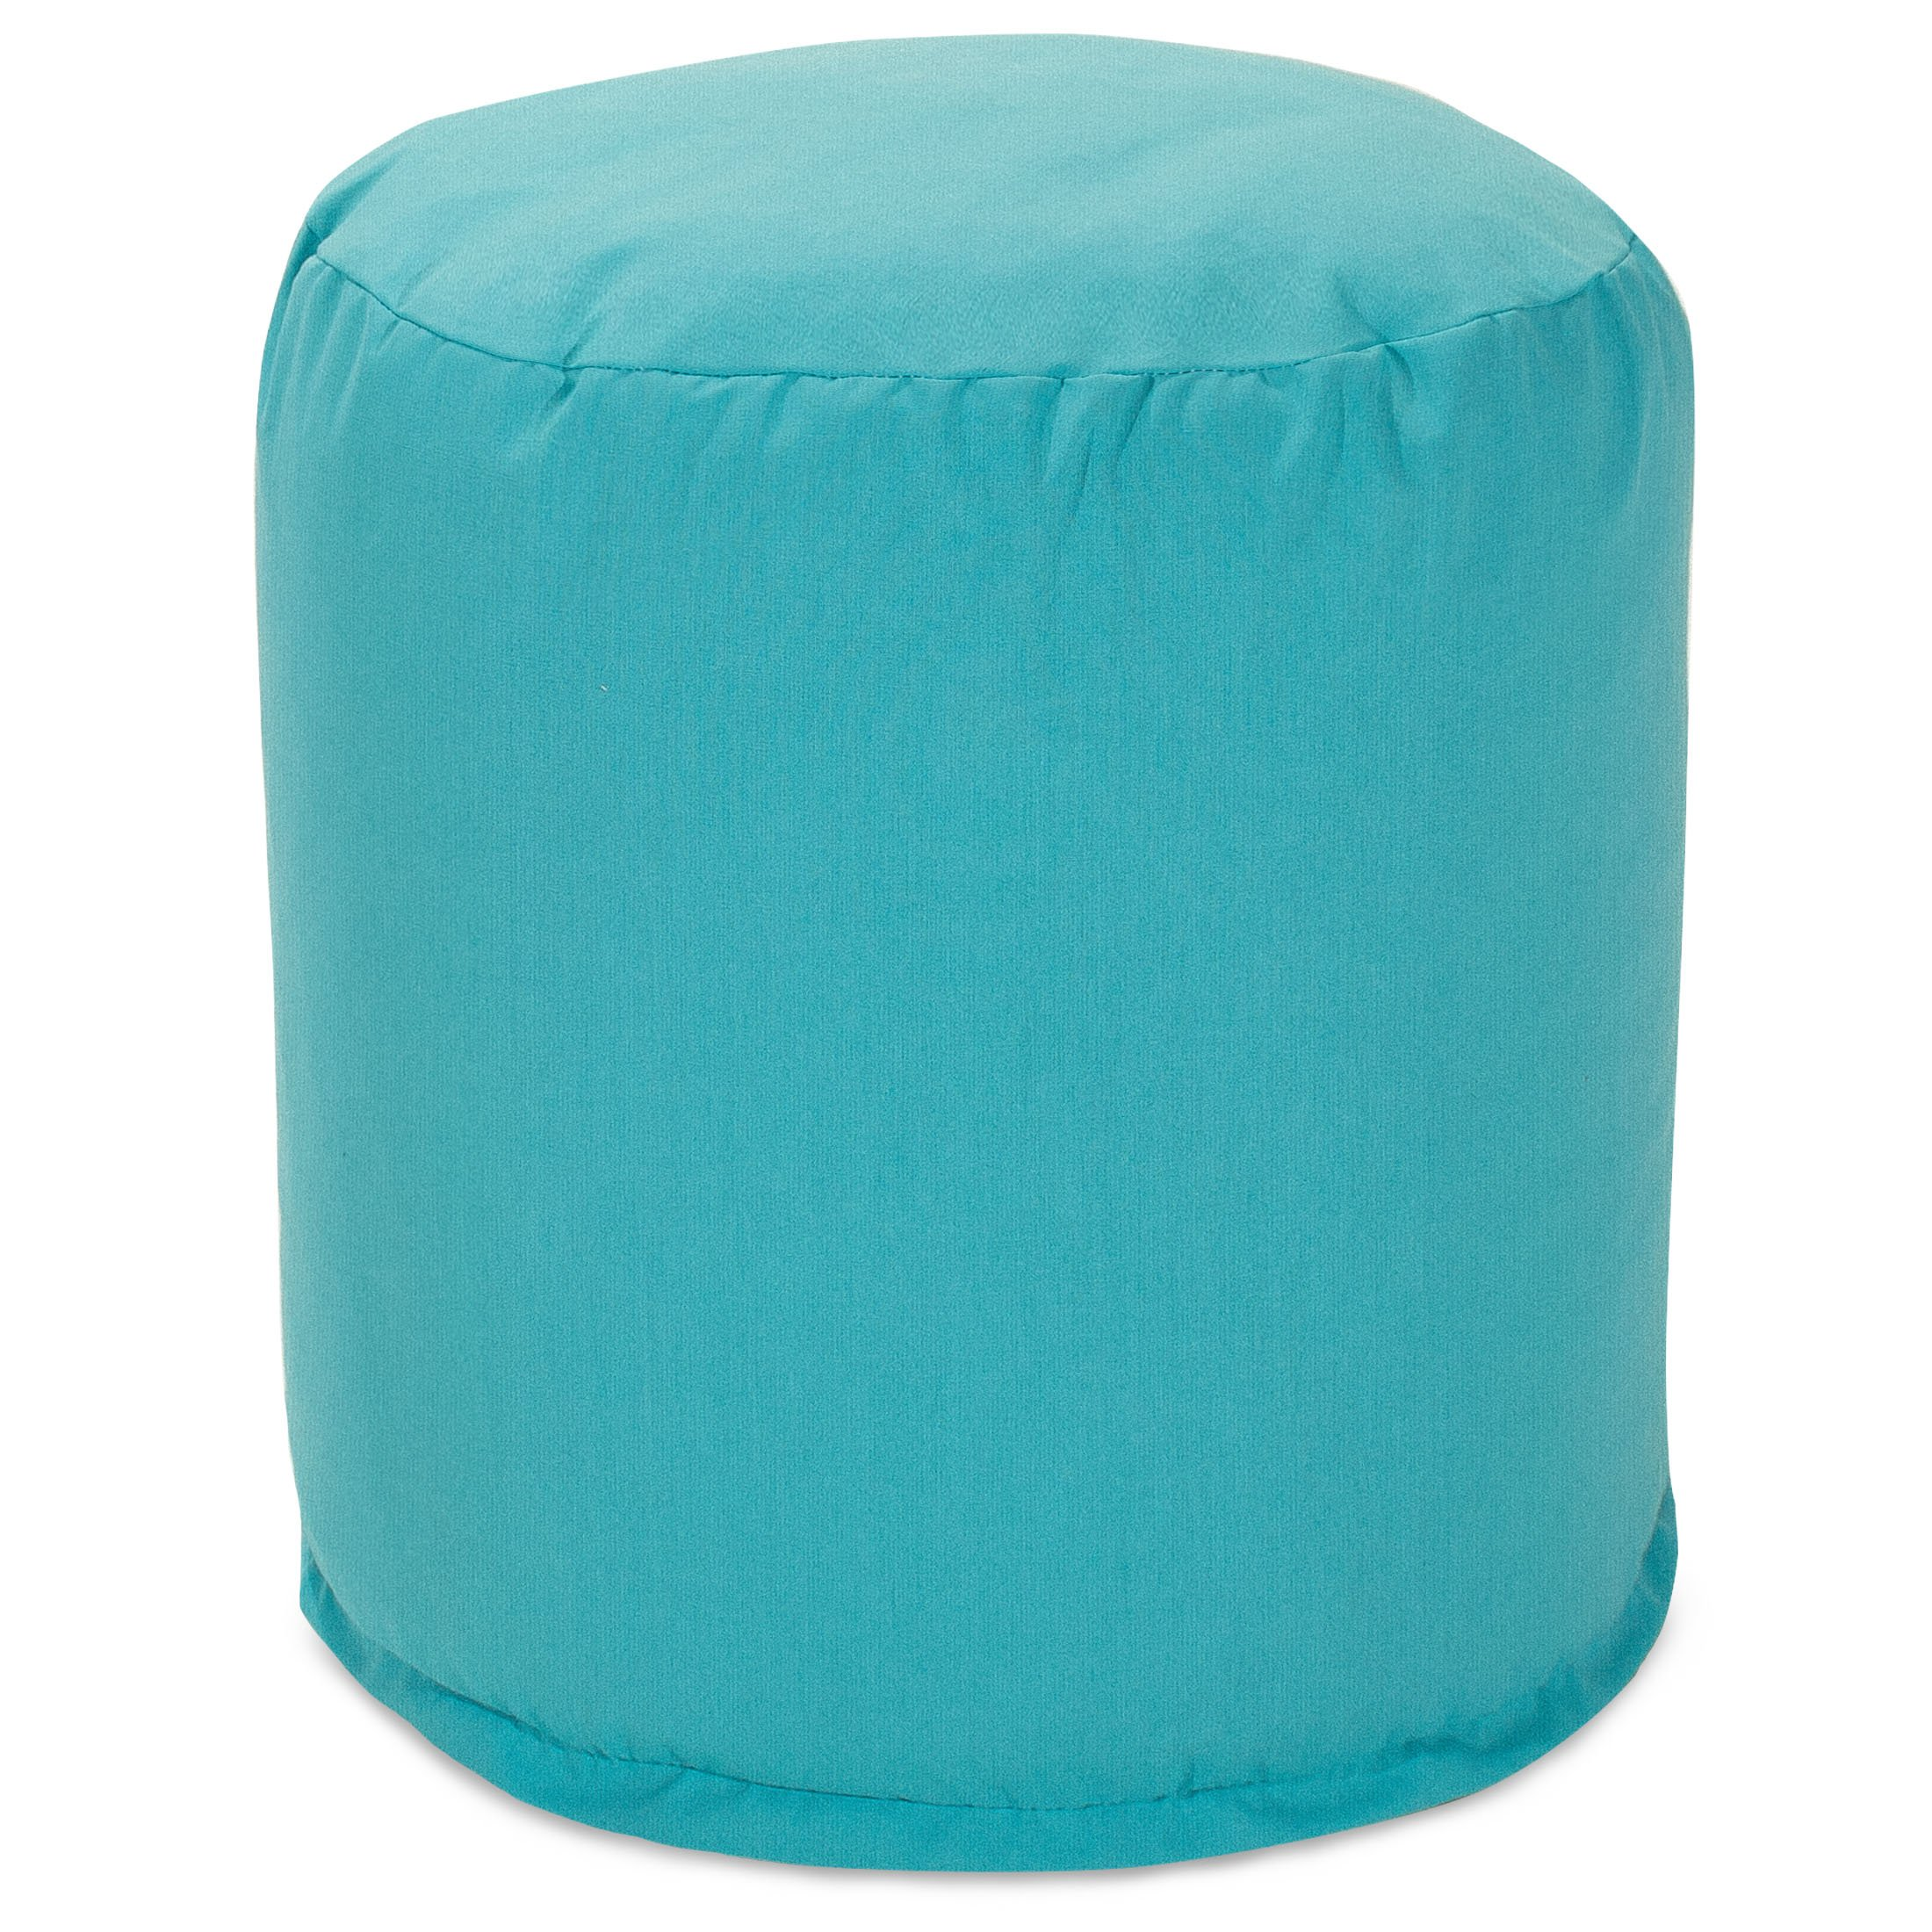 Majestic Home Goods Pouf, Small, Teal